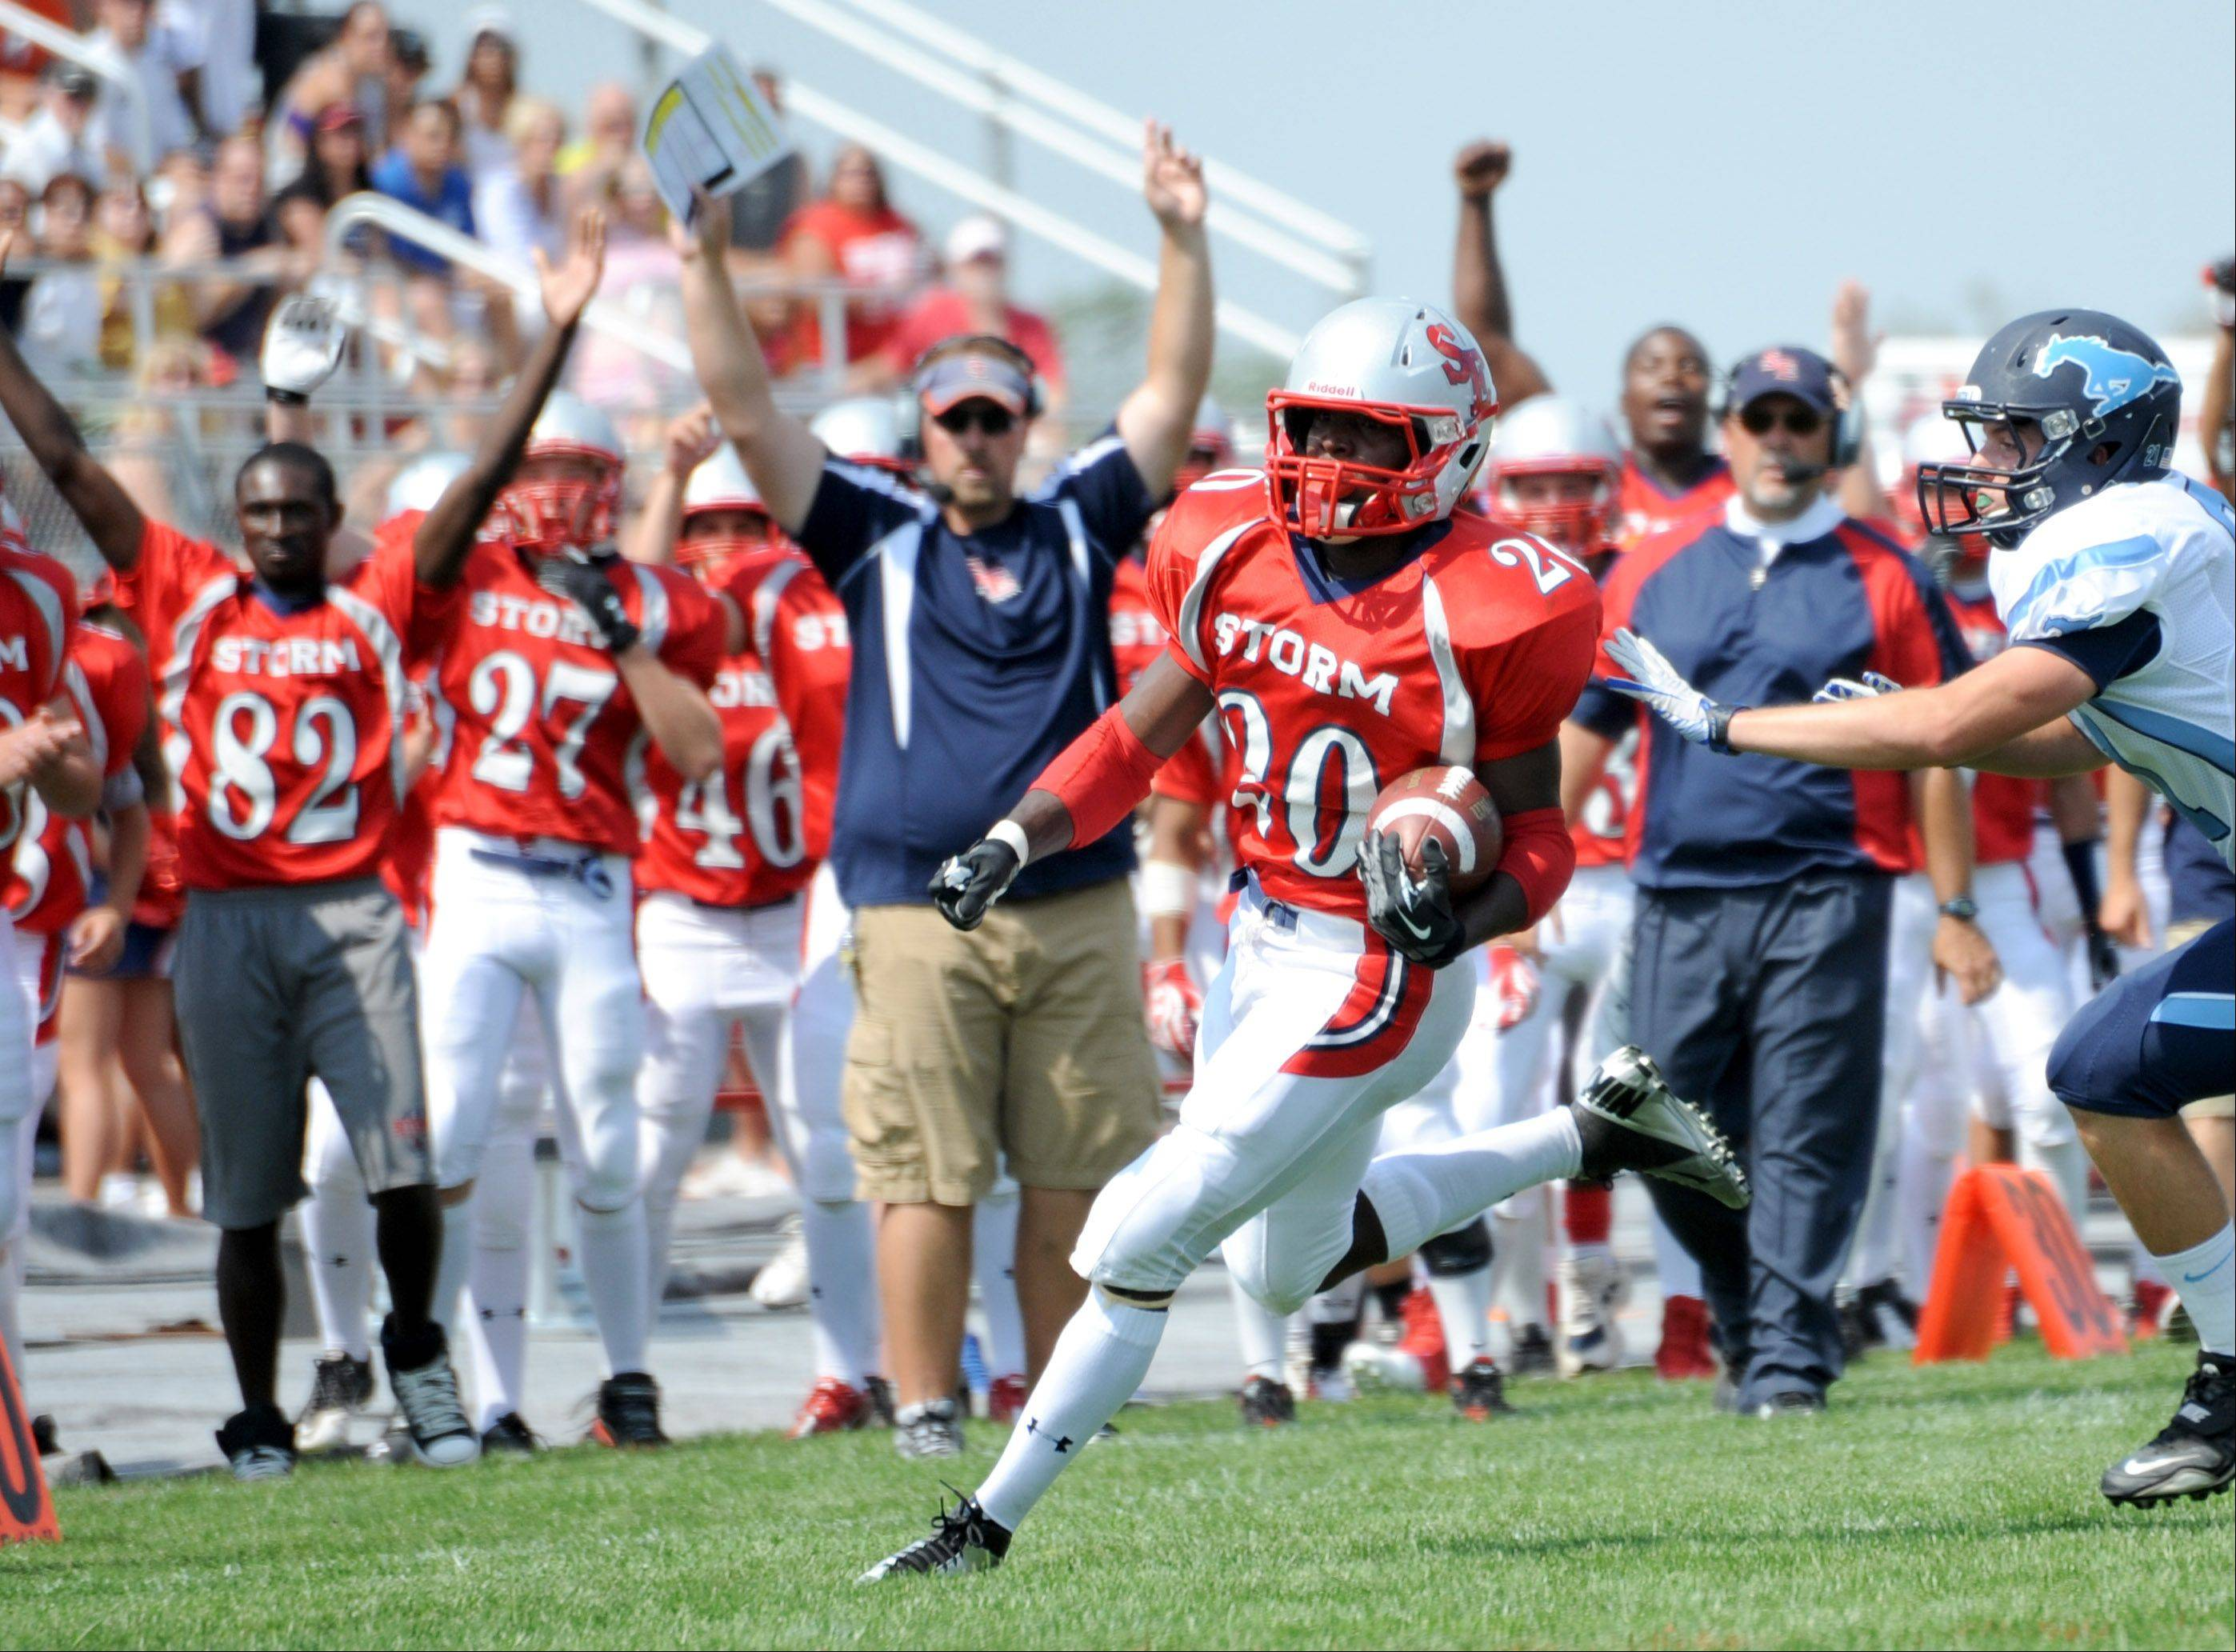 South Elgin running back Jeff Broger turns the corner on a long run against Downers Grove South Saturday in South Elgin.